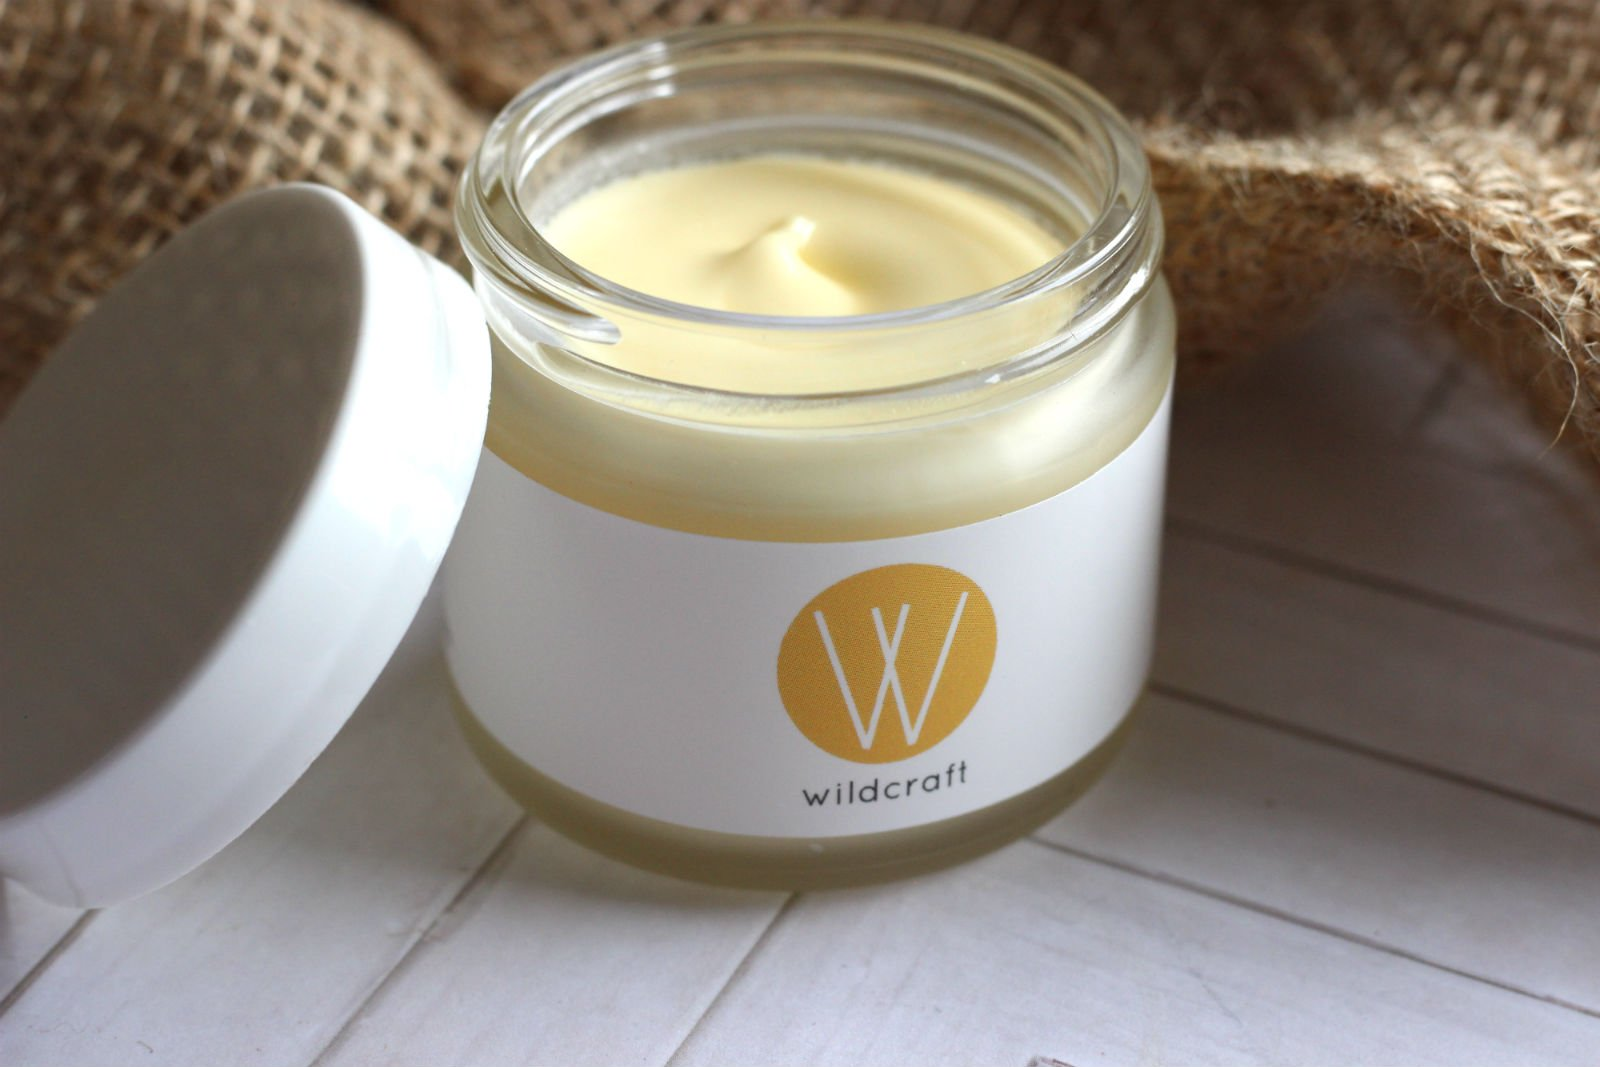 wildcraft geranium orange blossom review